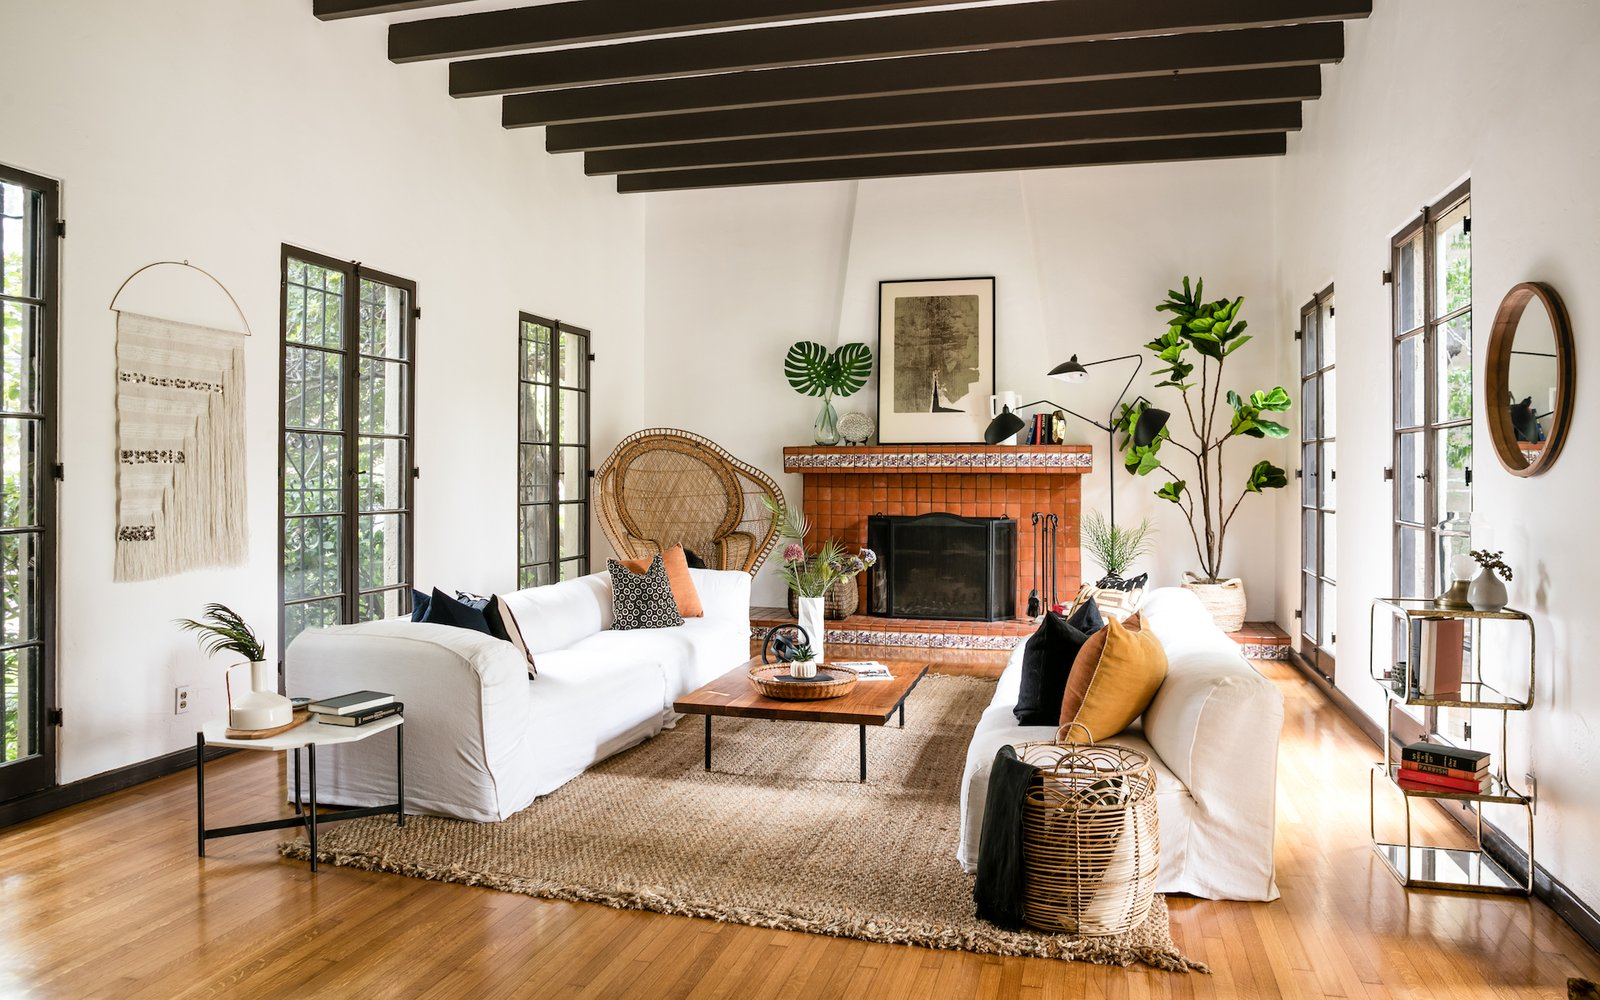 7 Tips For Decorating A Spanish Style Home